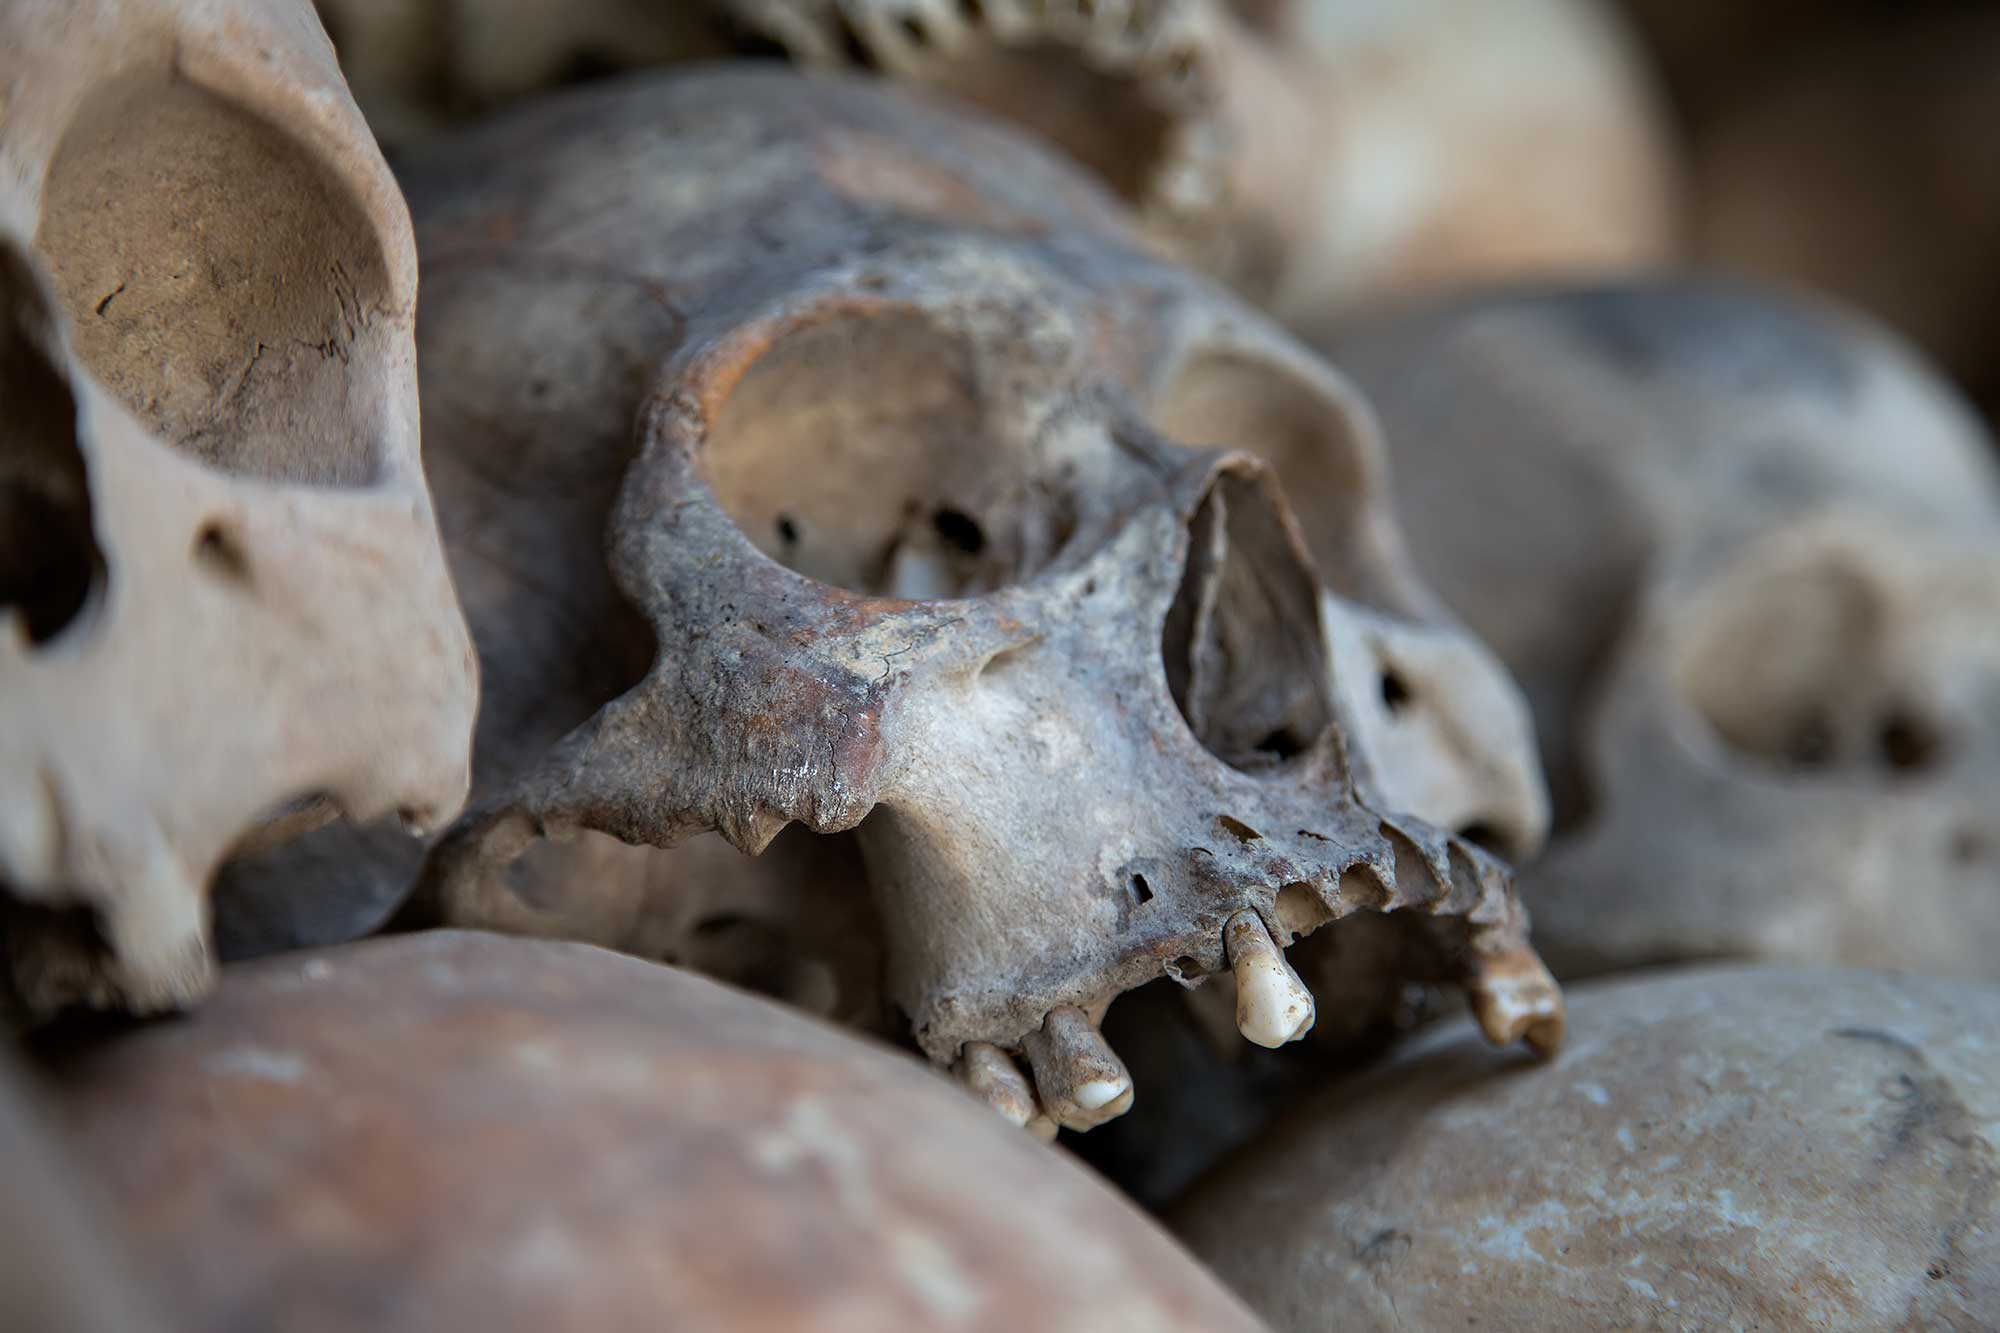 Human skulls at the Killing Fields outside of Phnom Penh, Cambodia. © Ulli Maier & Nisa Maier